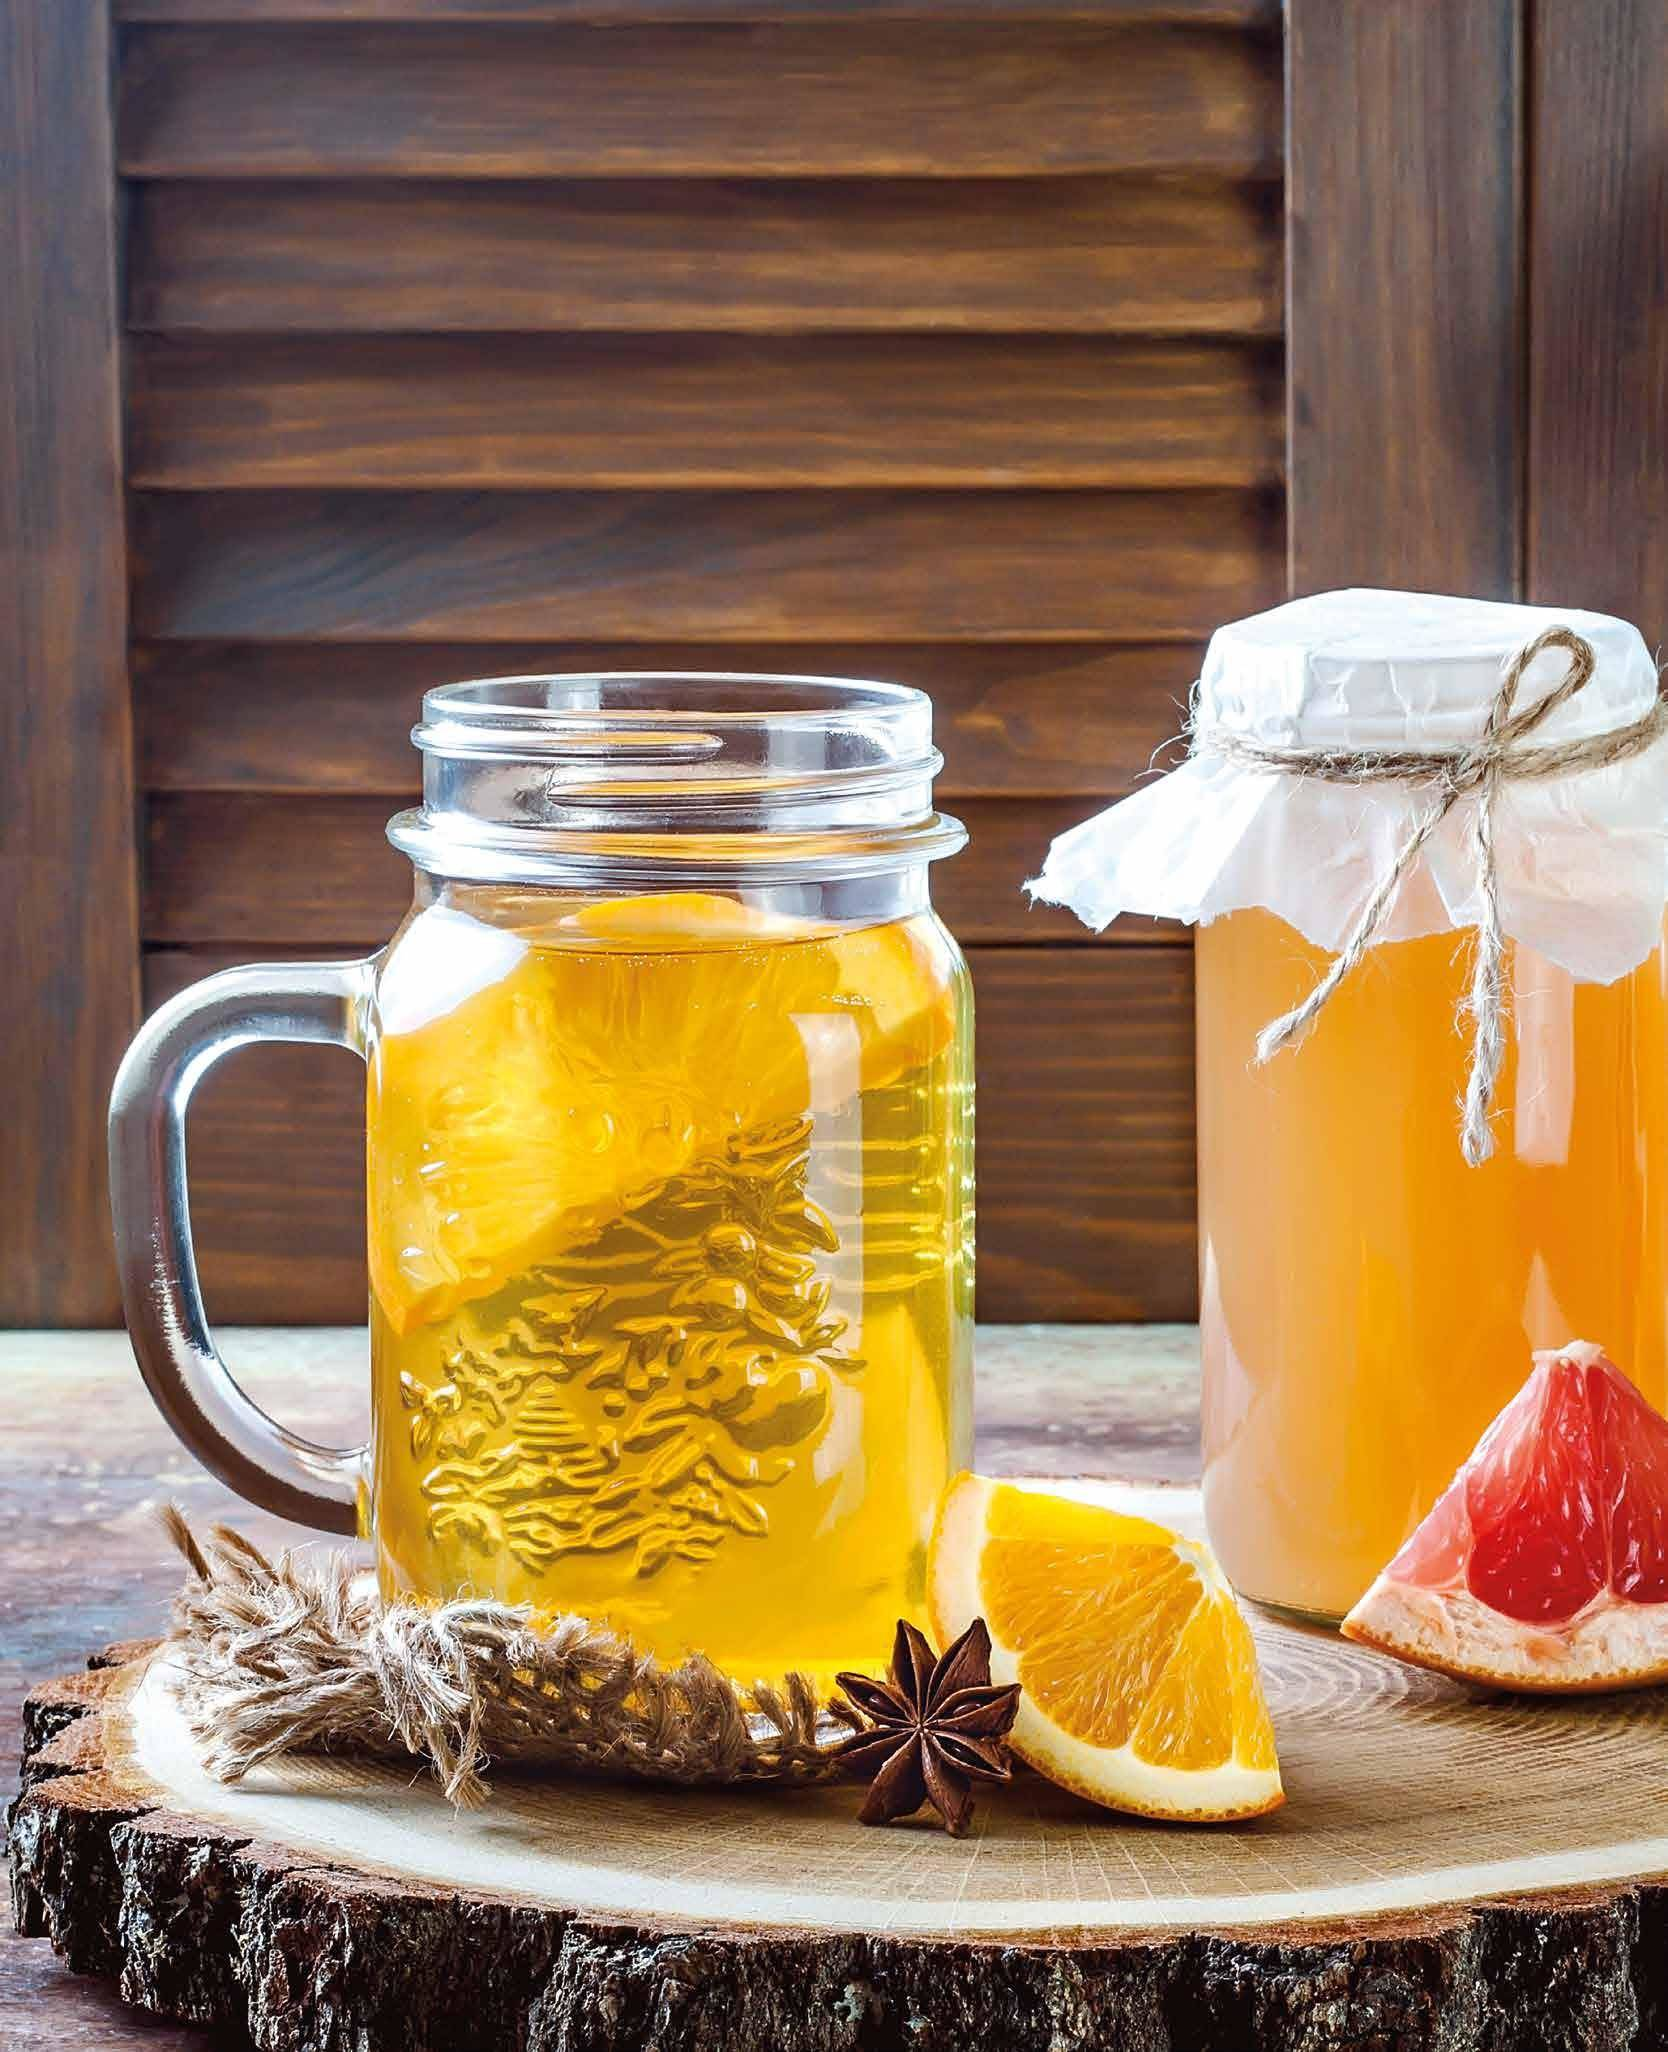 4 Kombucha benefits to gut health